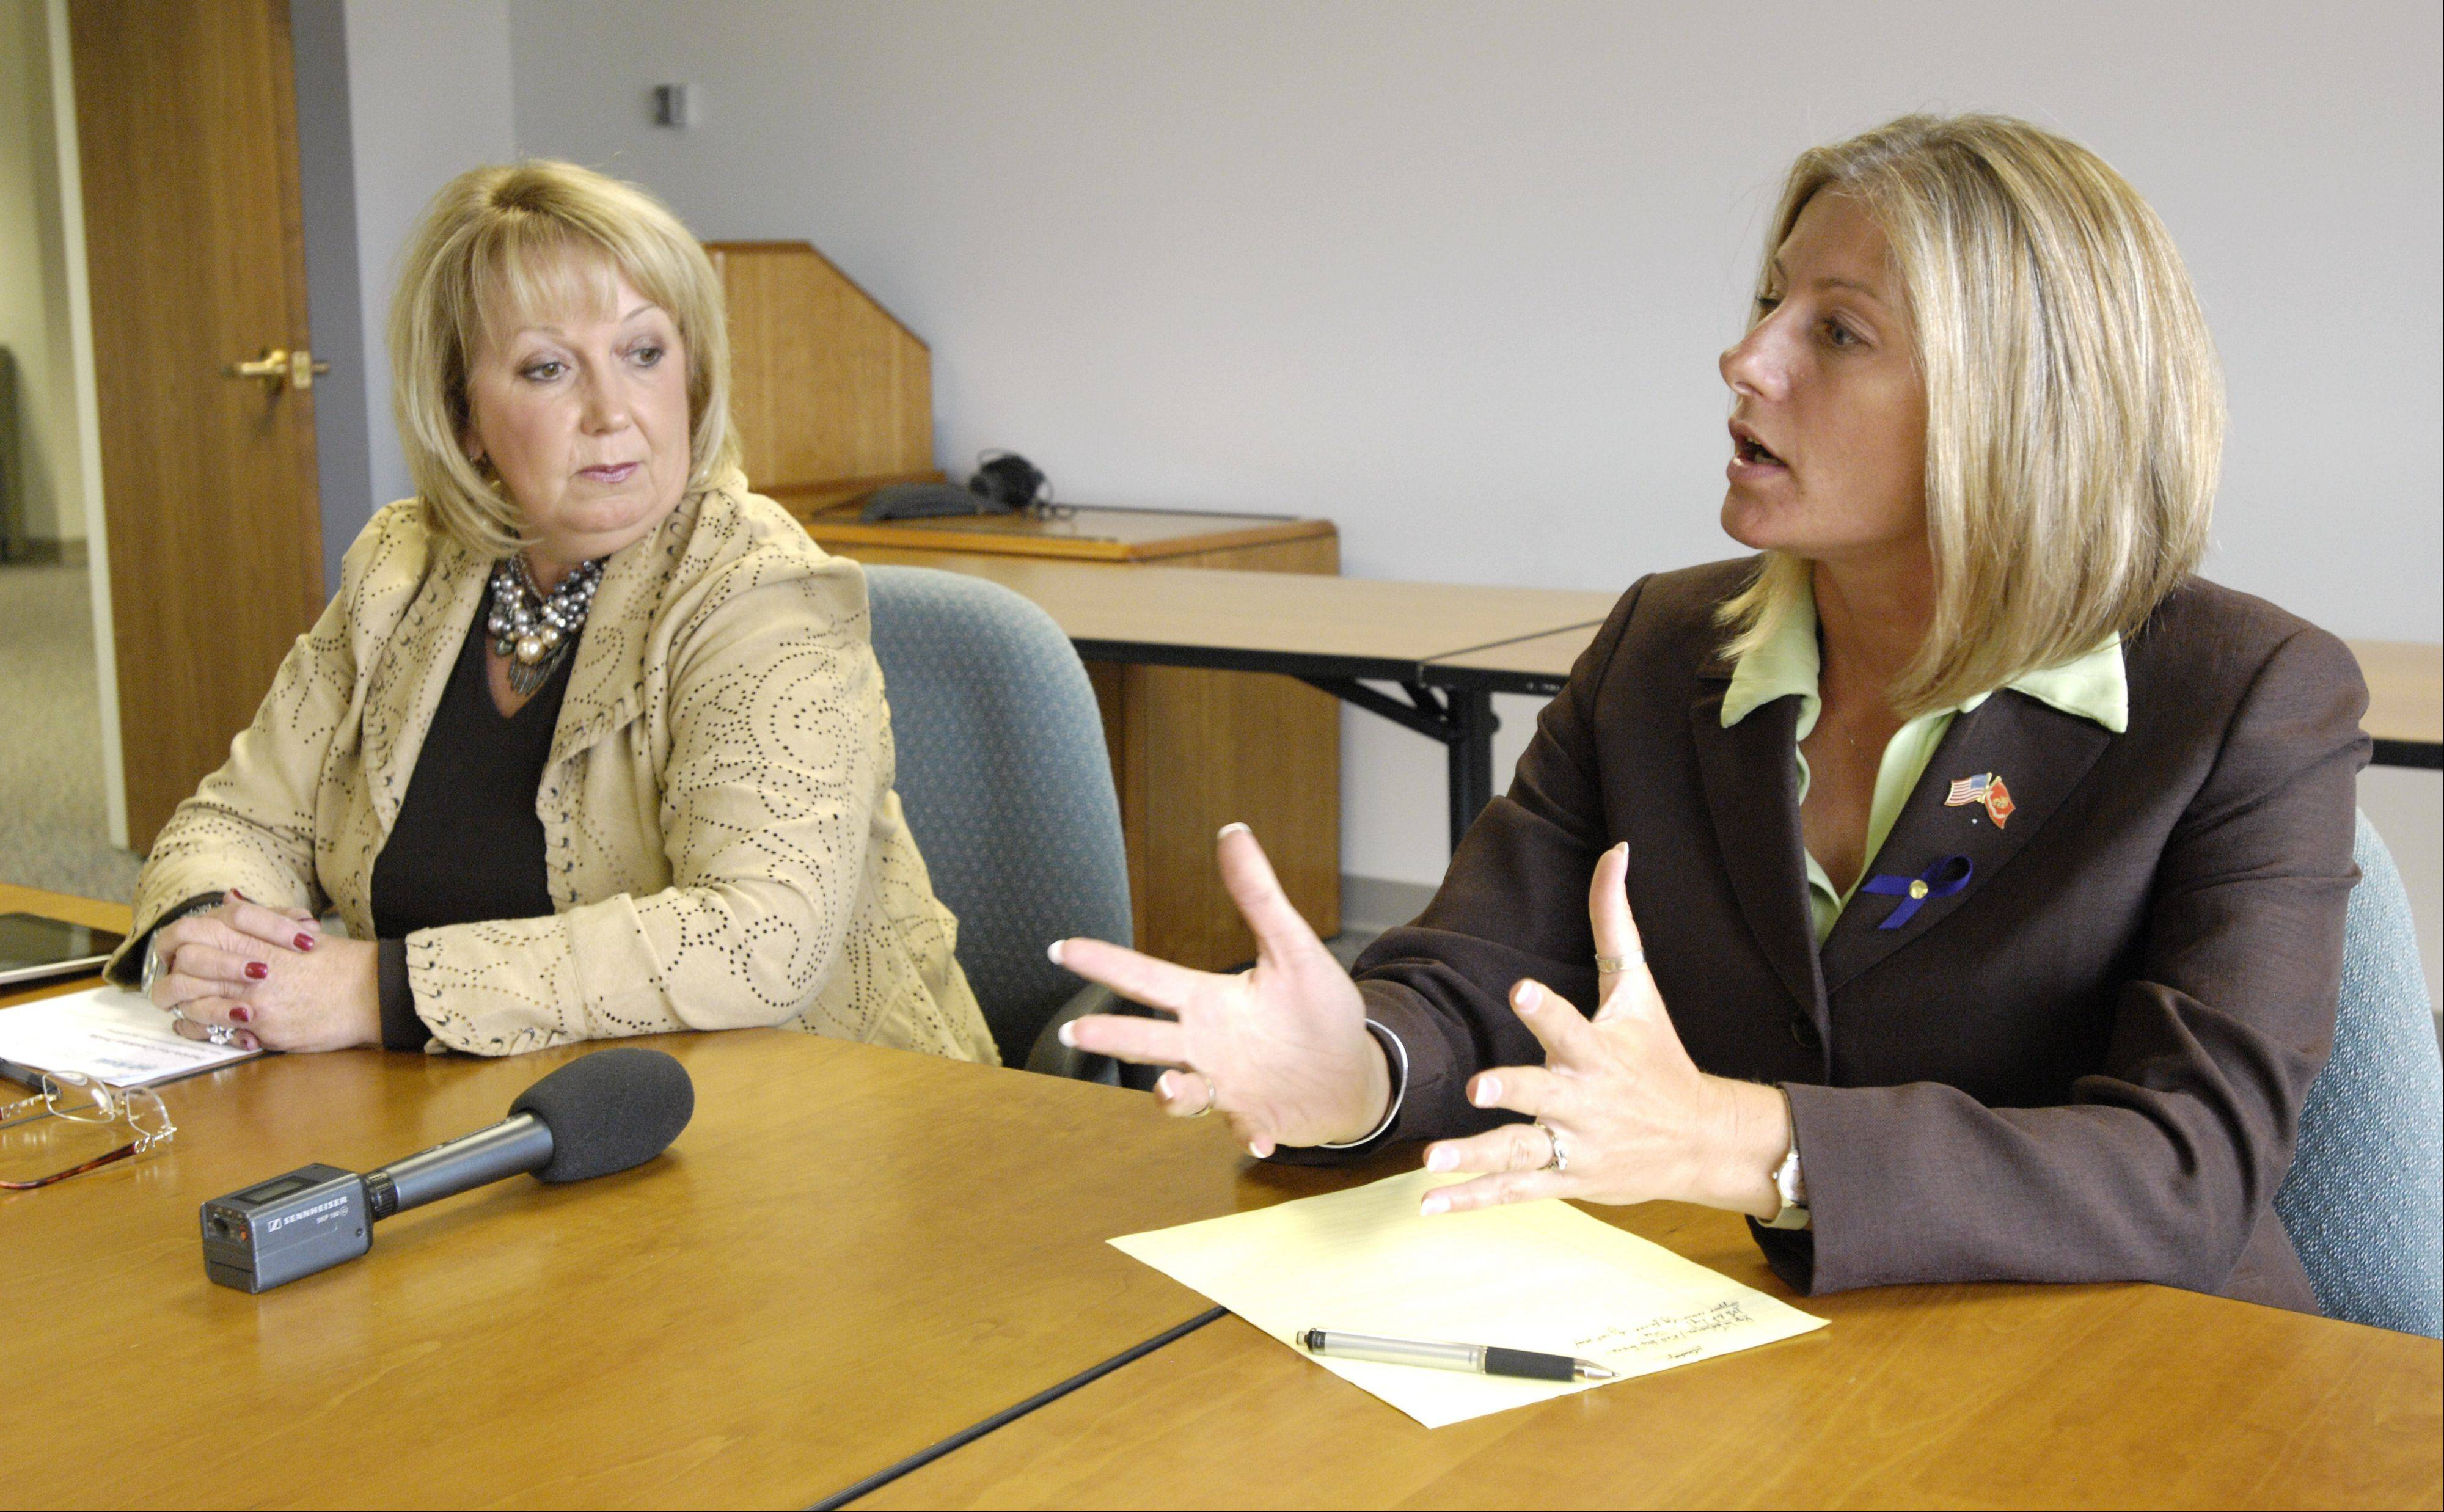 Democrat Stephanie Kifowit, right, speaks to the Daily Herald about issues facing the 84th state House District in the Aurora area. Kifowit is facing Republican Pat Fee in a race for the seat in the Nov. 6 election.